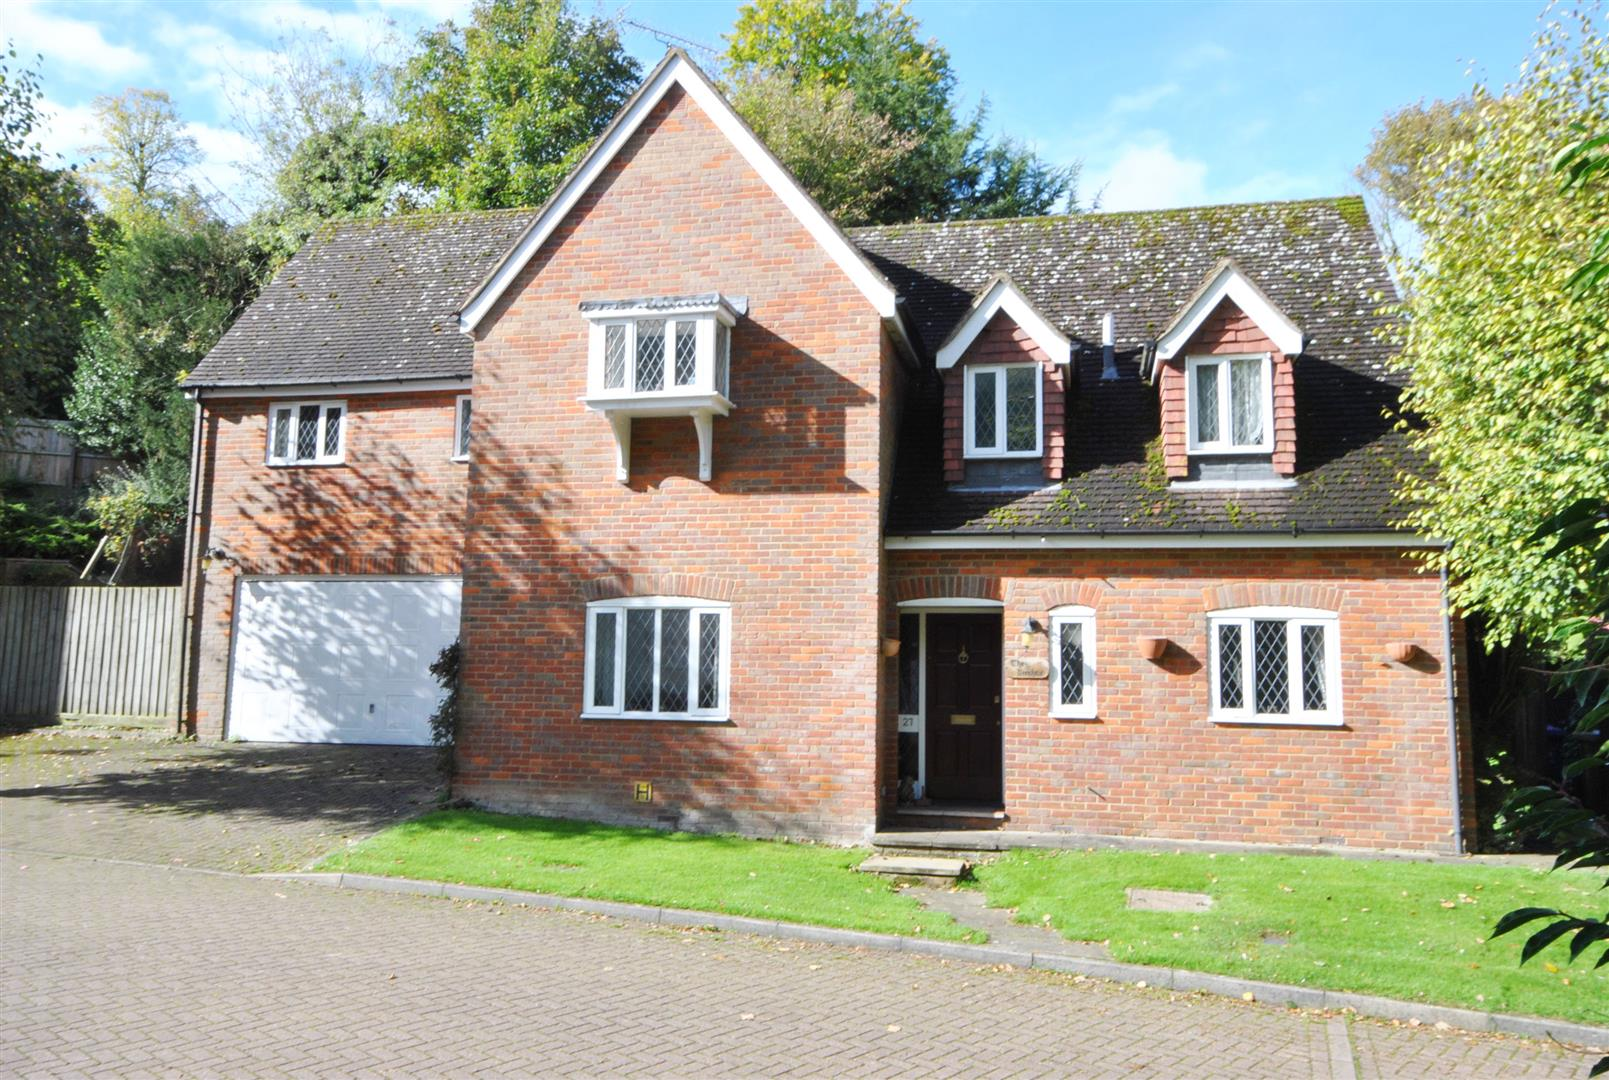 4 Bedrooms, House - Detached